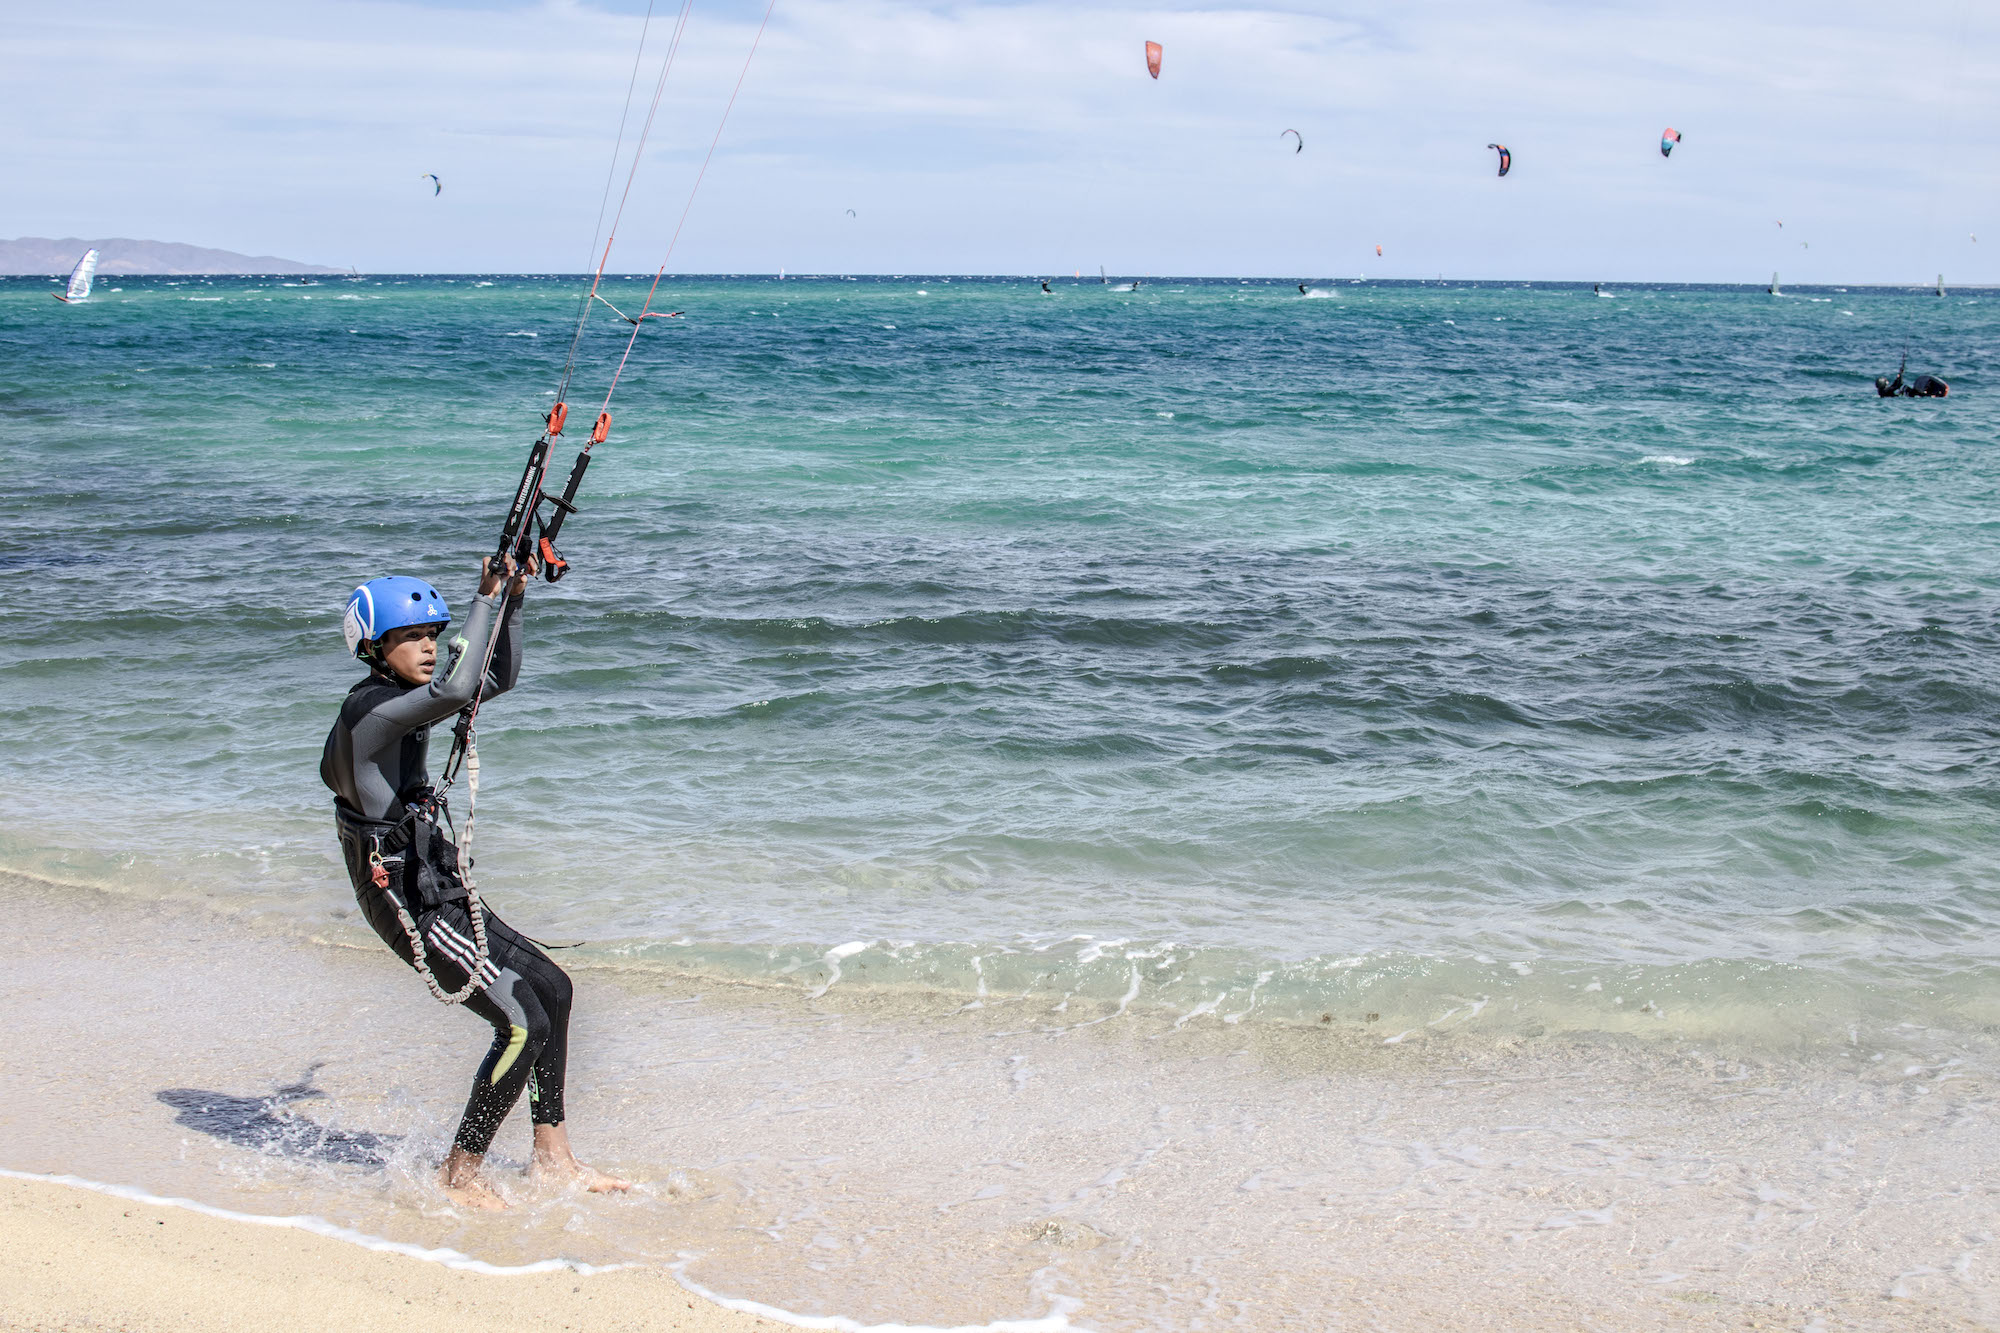 Kite Surfing at La Ventana | Isla Espiritu | La Paz | LovaLinda Photography